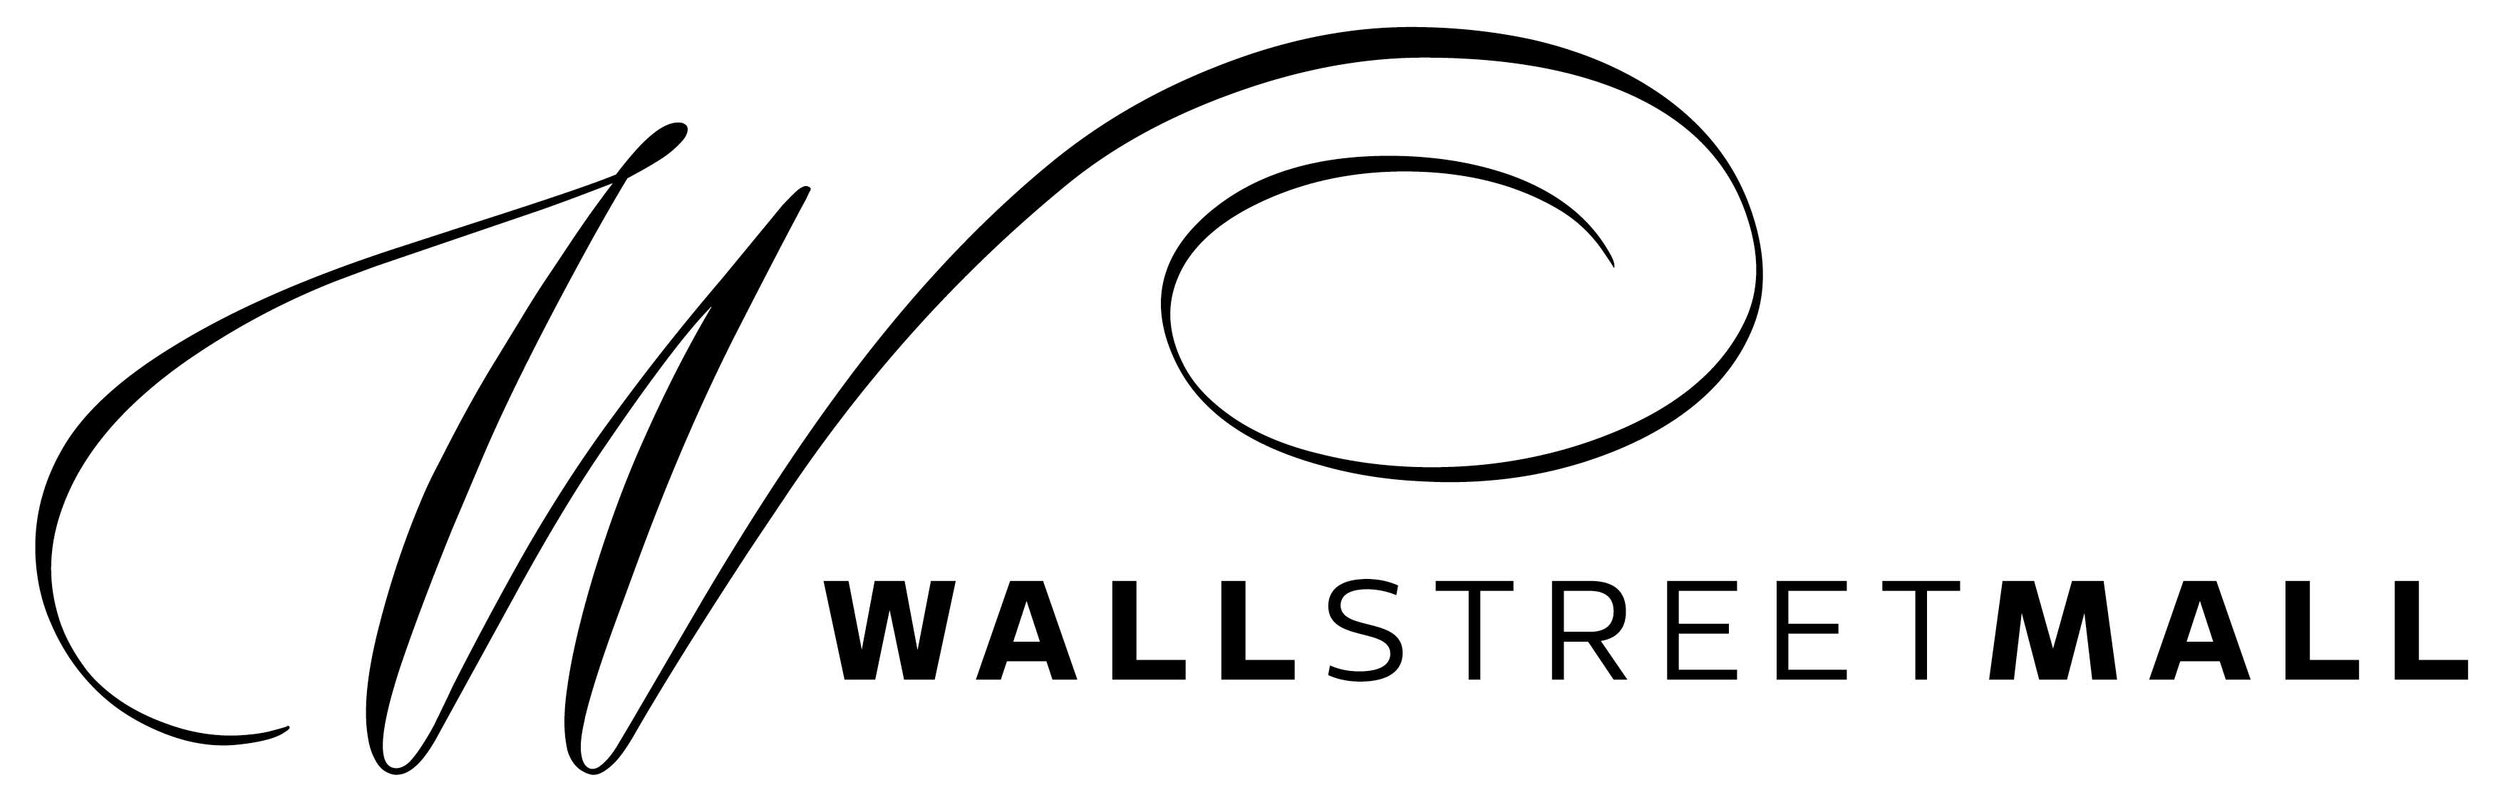 Wall Street Mall LOGO.jpg